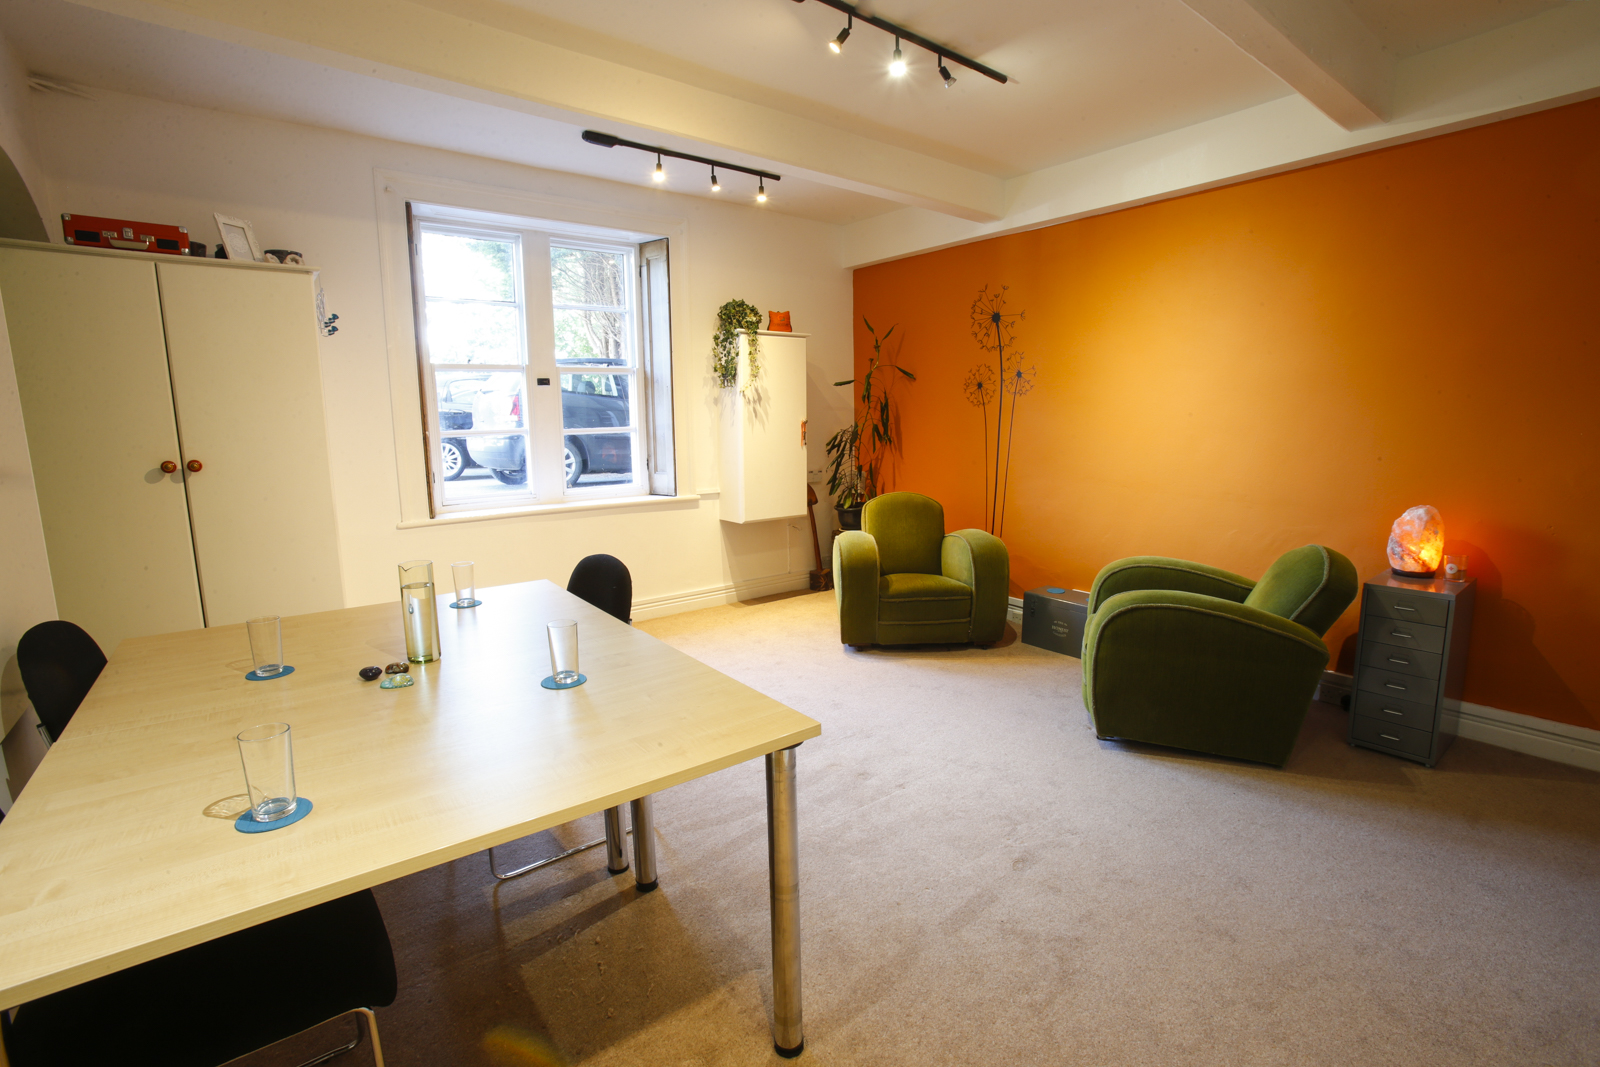 Copy of Counselling room in Huddersfield